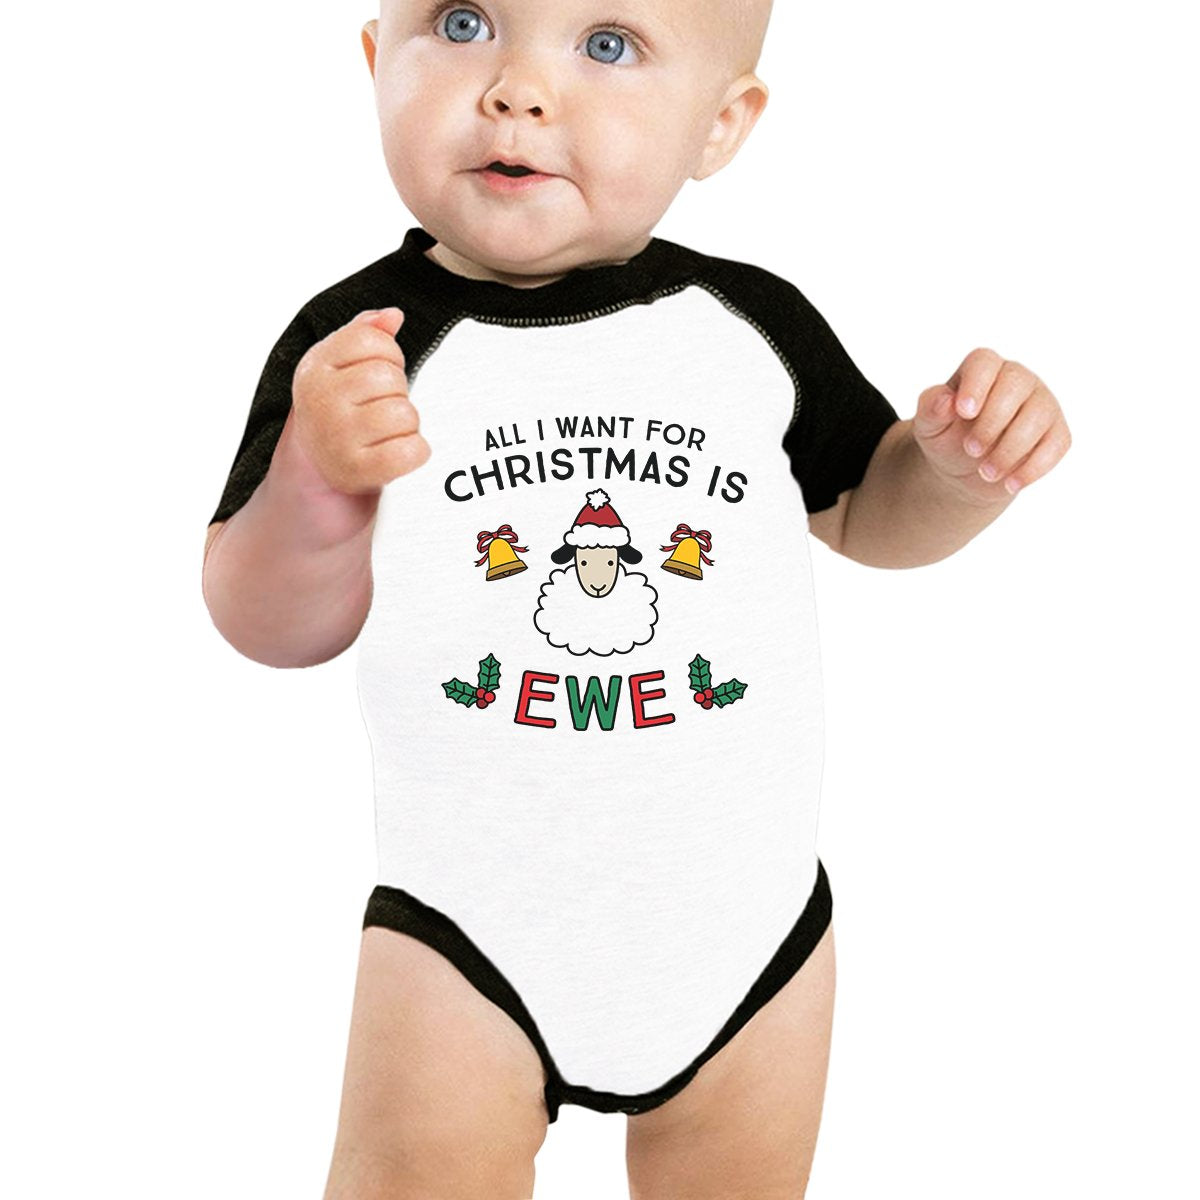 All I Want For Christmas Is Ewe Baby Black And White Baseball Shirt